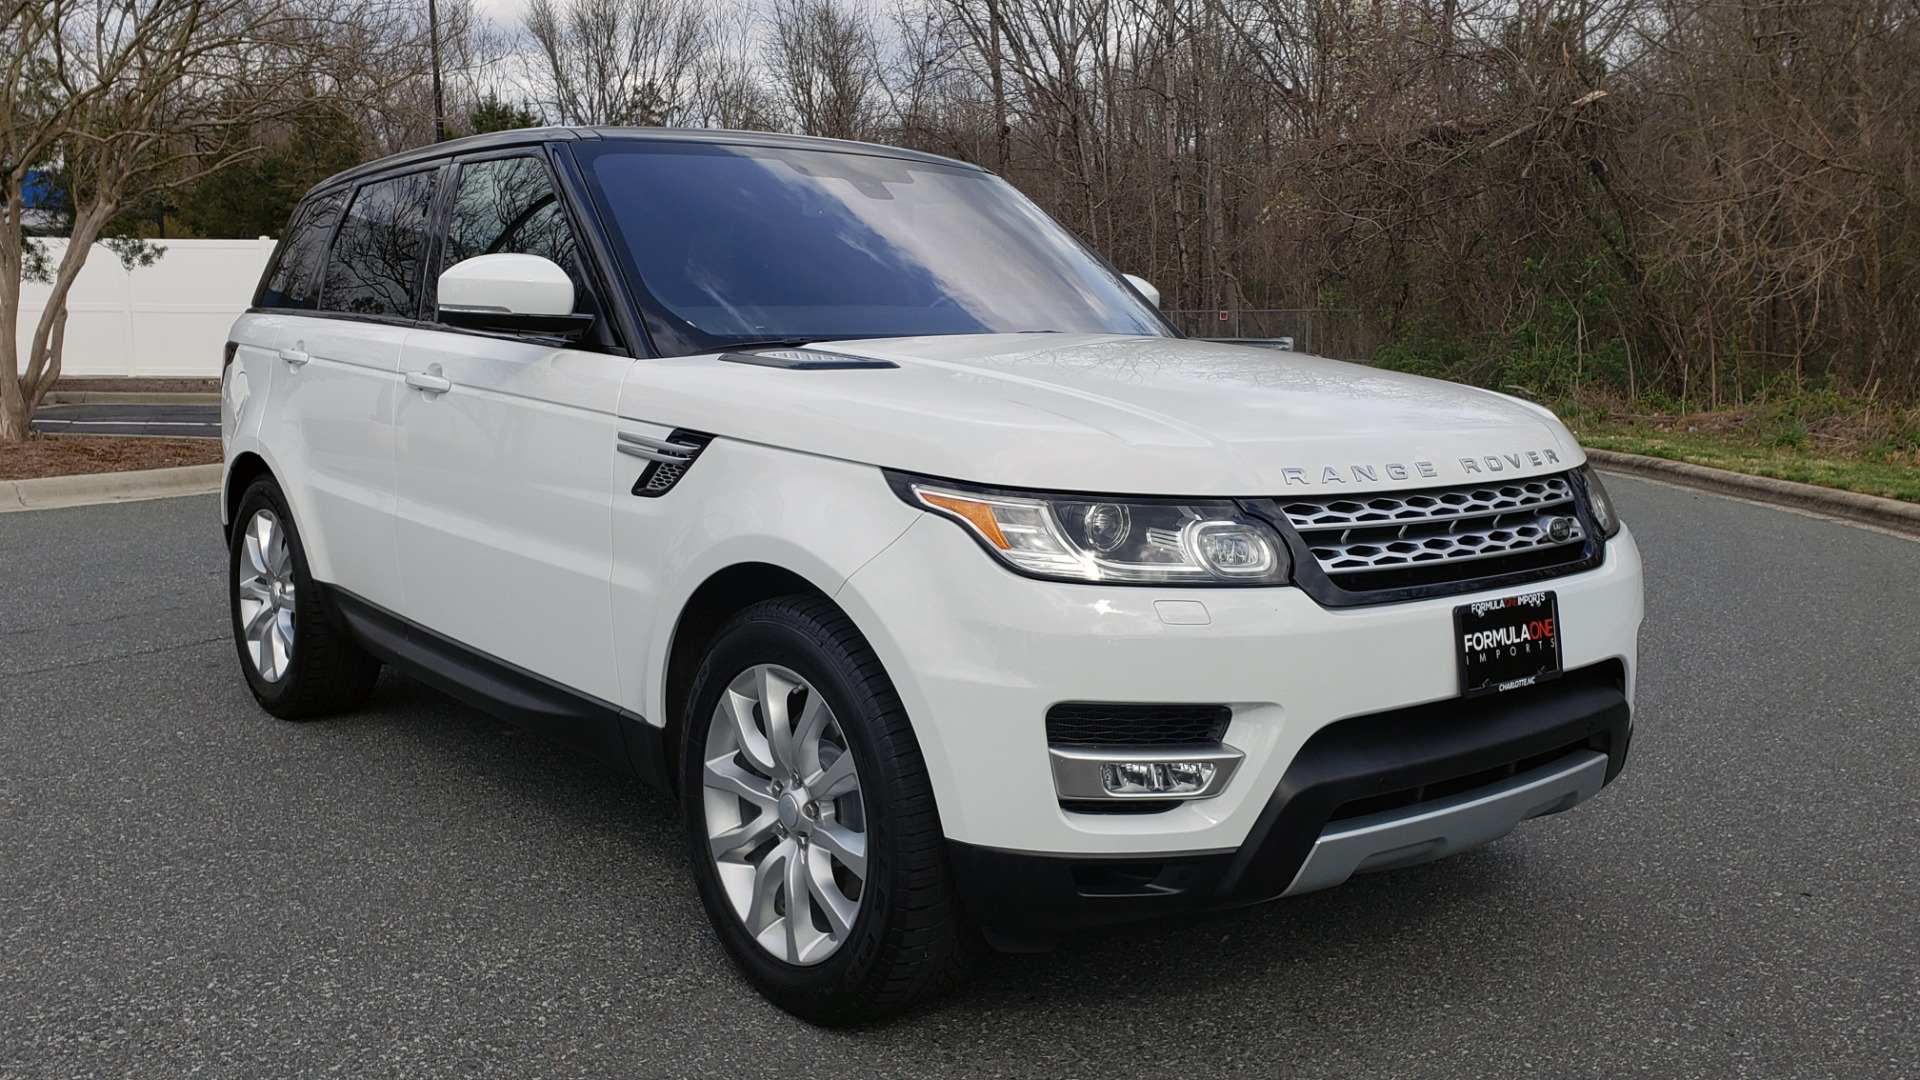 Used 2016 Land Rover RANGE ROVER SPORT V6 HSE 4WD / NAV / SUNROOF / MERIDIAN / REARVIEW for sale Sold at Formula Imports in Charlotte NC 28227 4